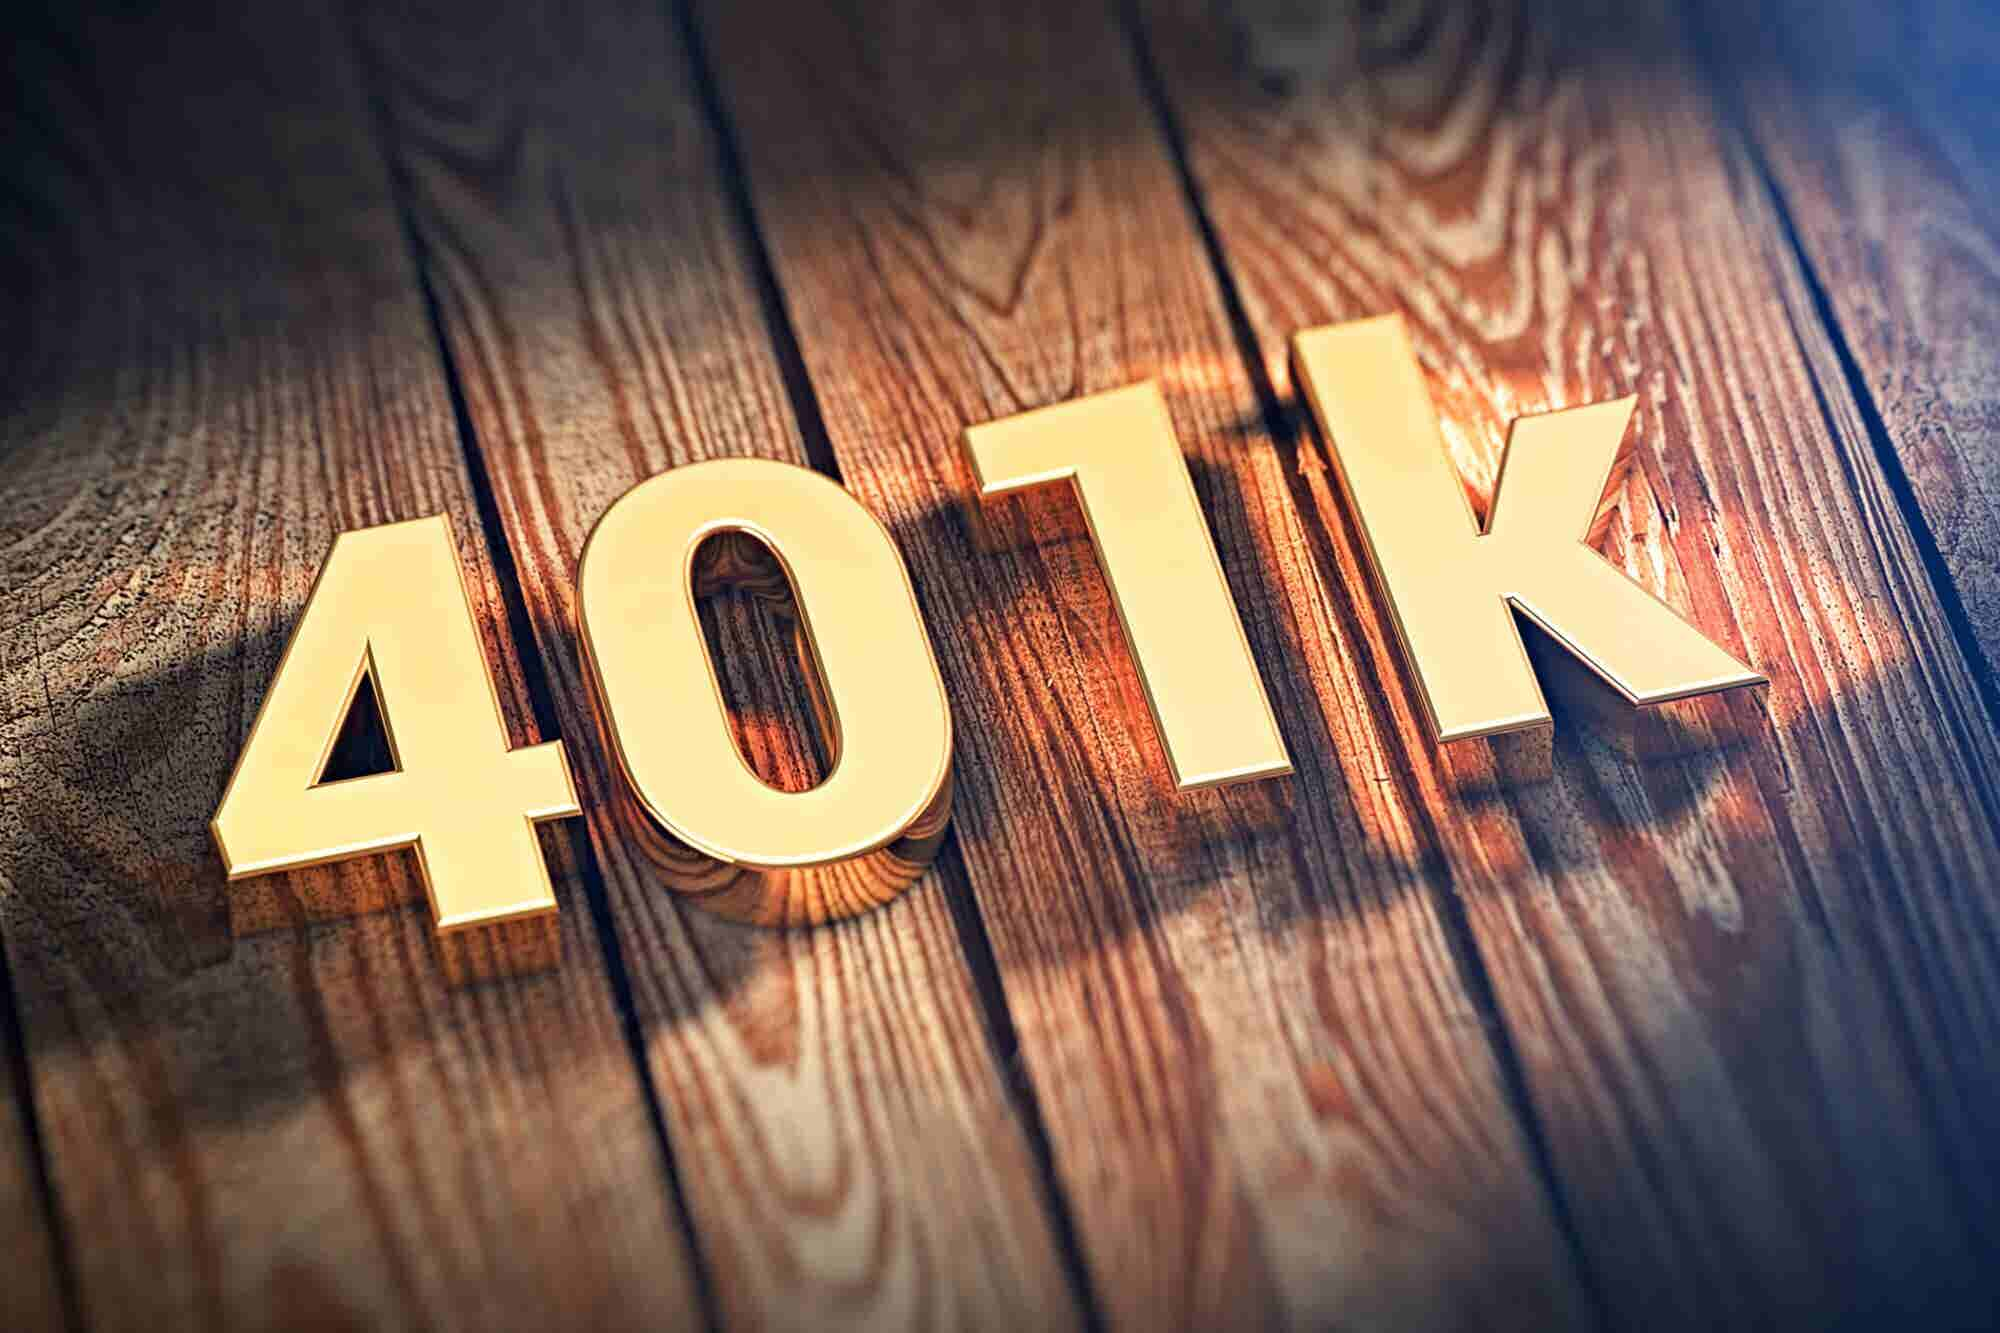 Make 401(k)s Great Again